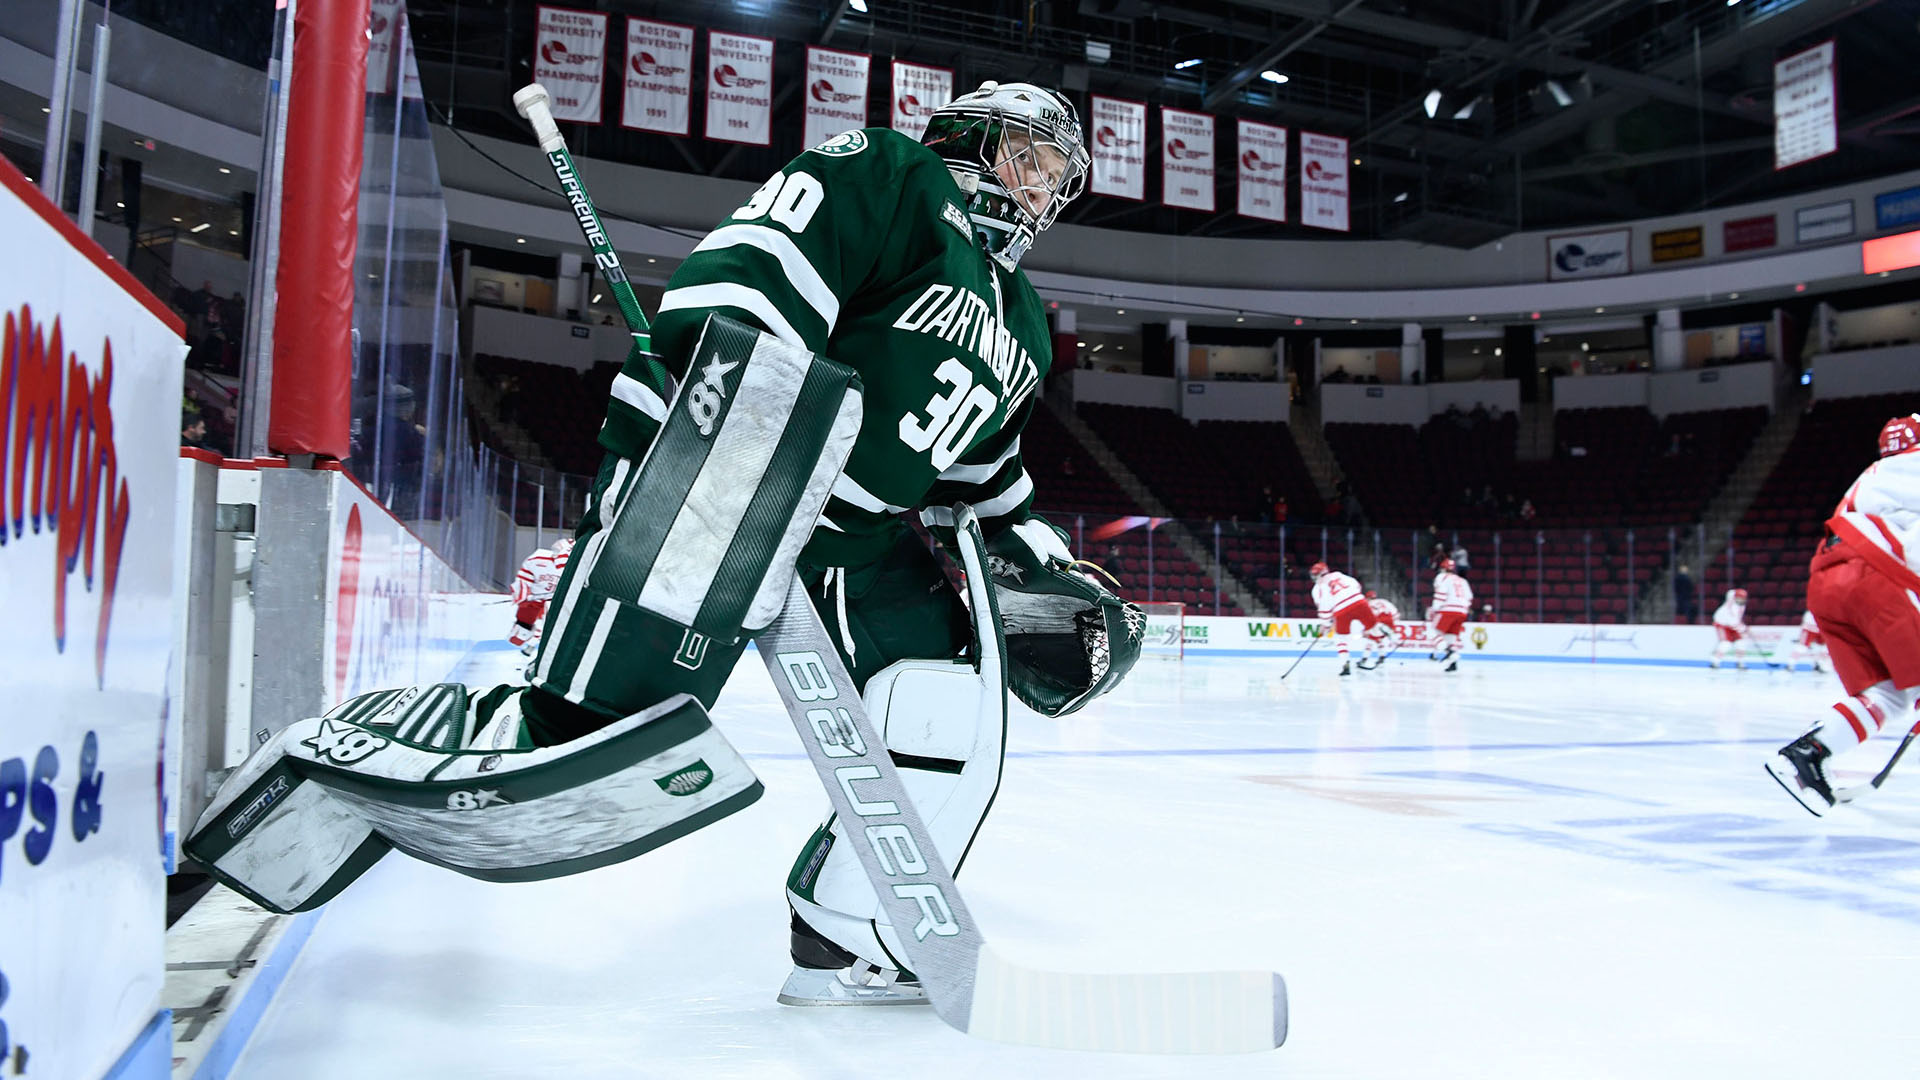 Goalie coaches and mentorship, mental strength, vision training systems, goalie training videos, hockey drills.